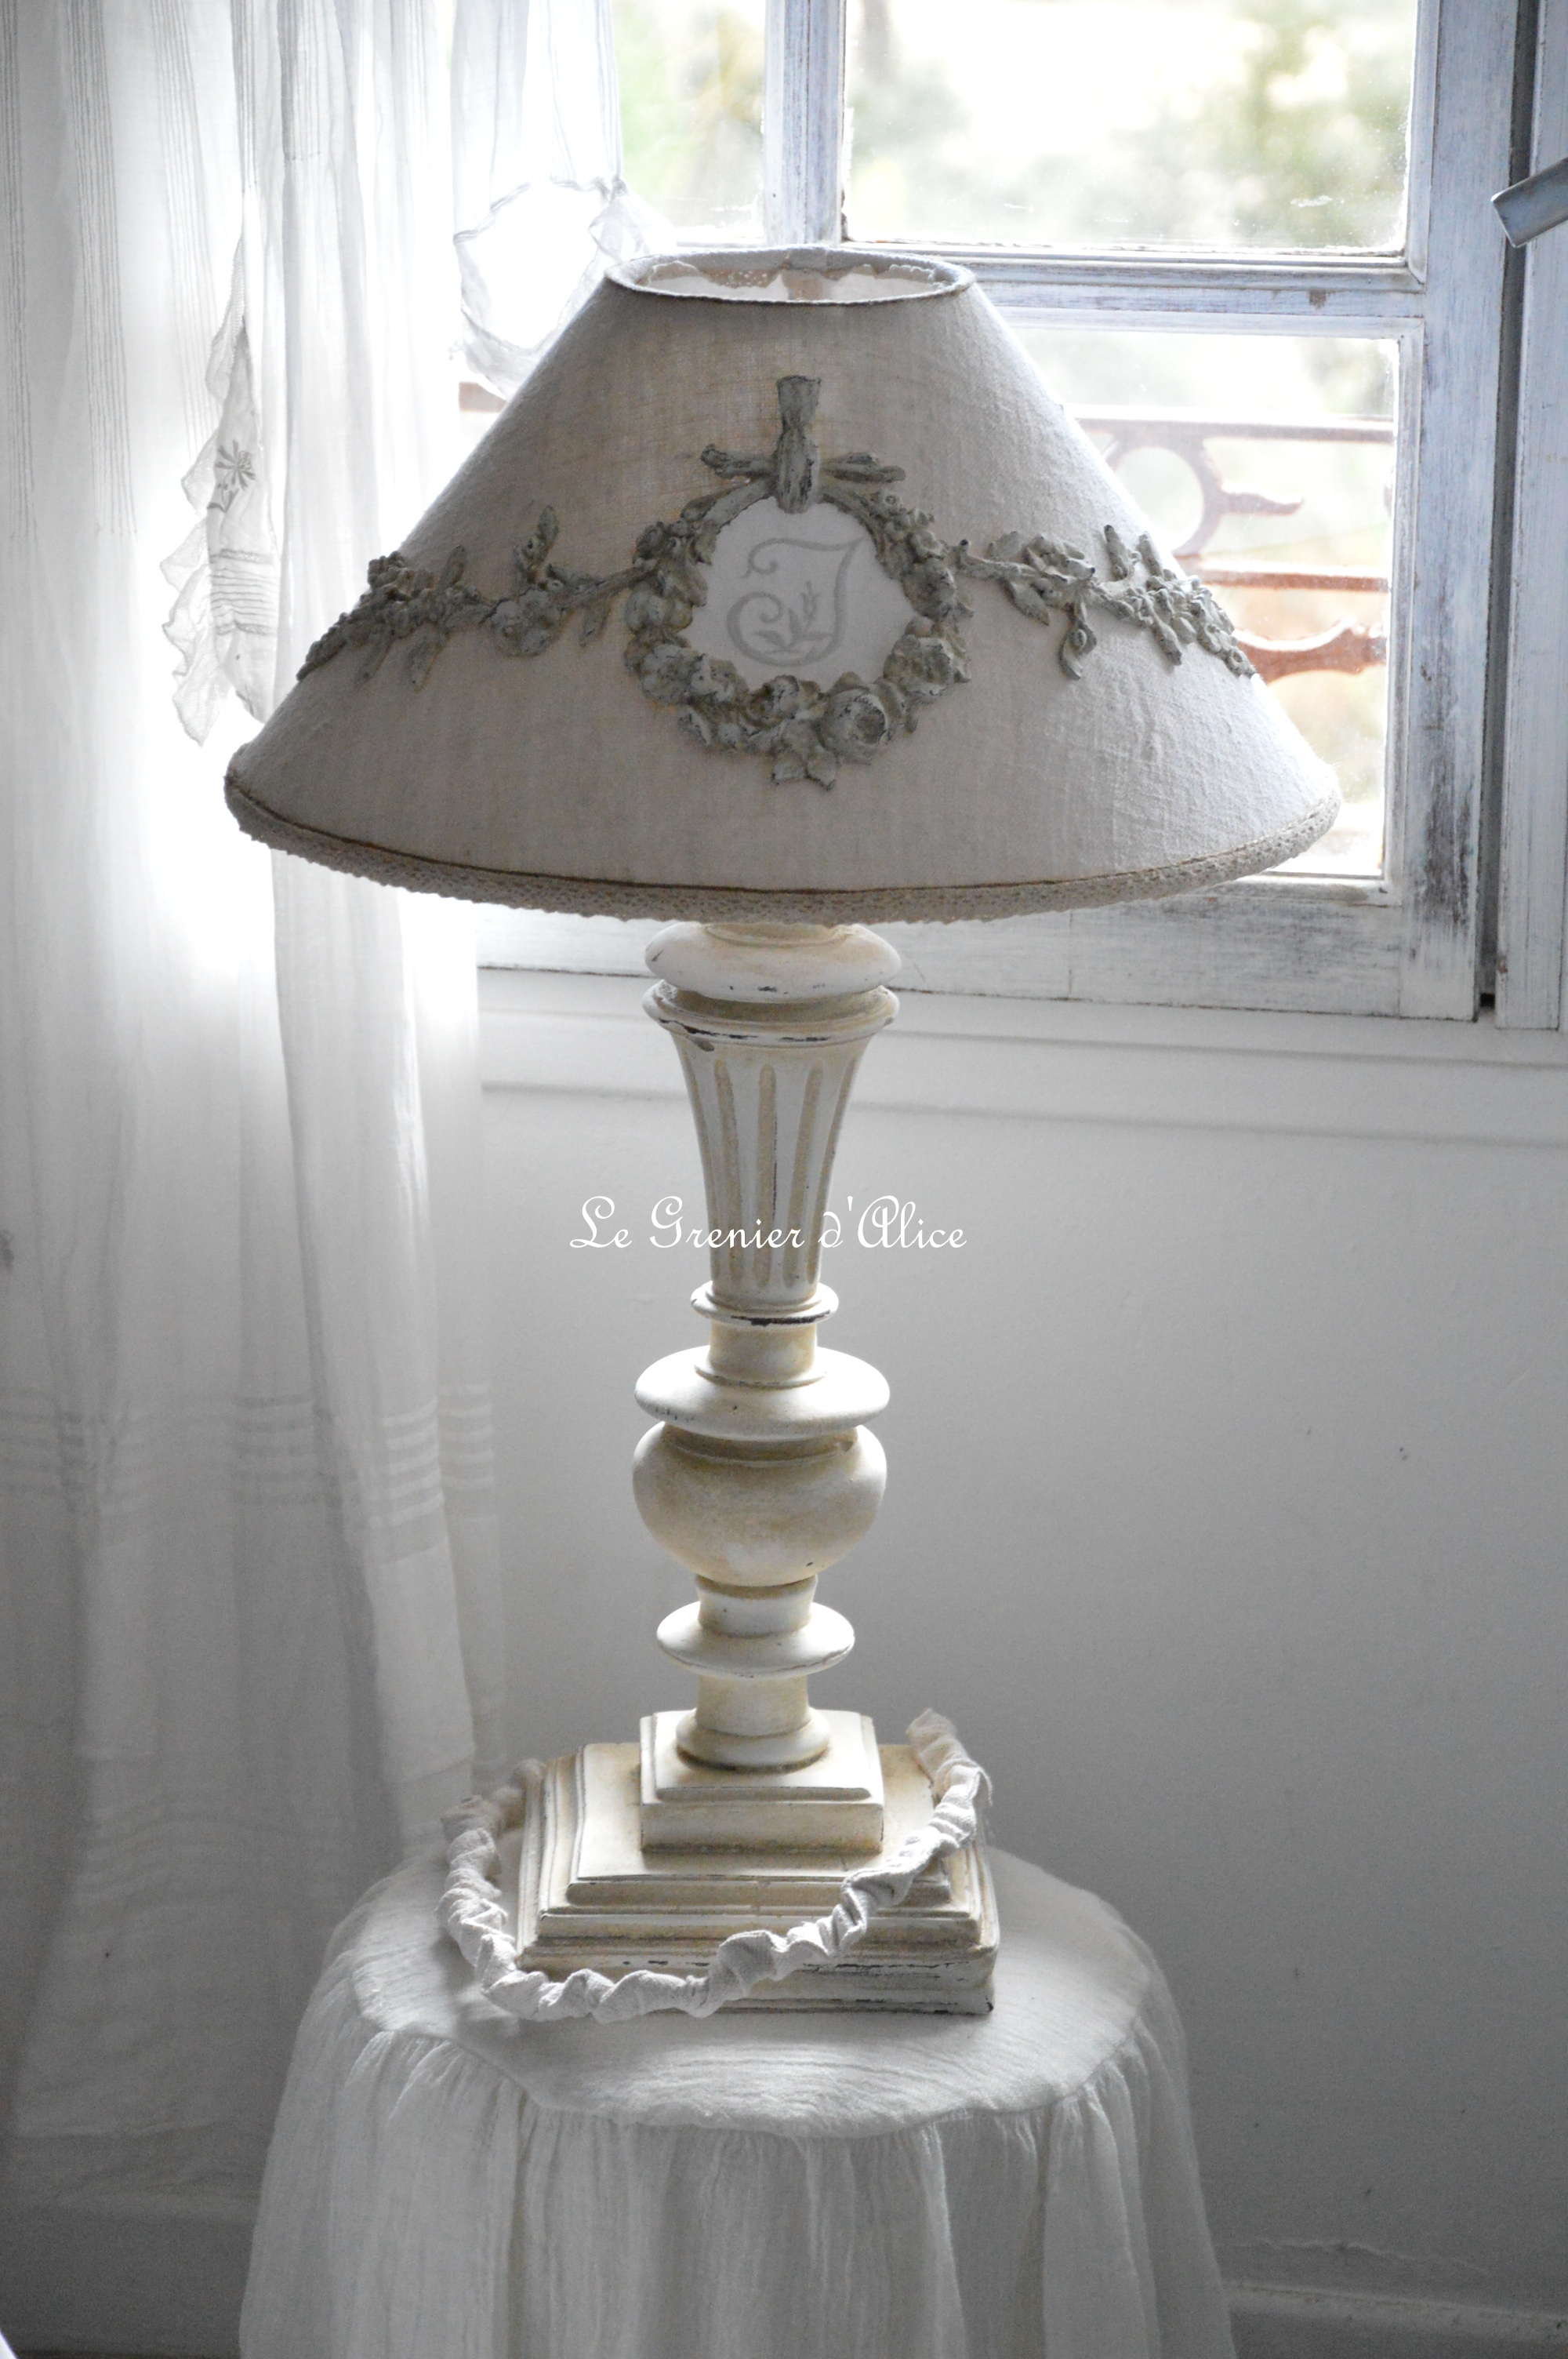 Relooking lampe de chevet le grenier d 39 alice for Table pour lampe de salon